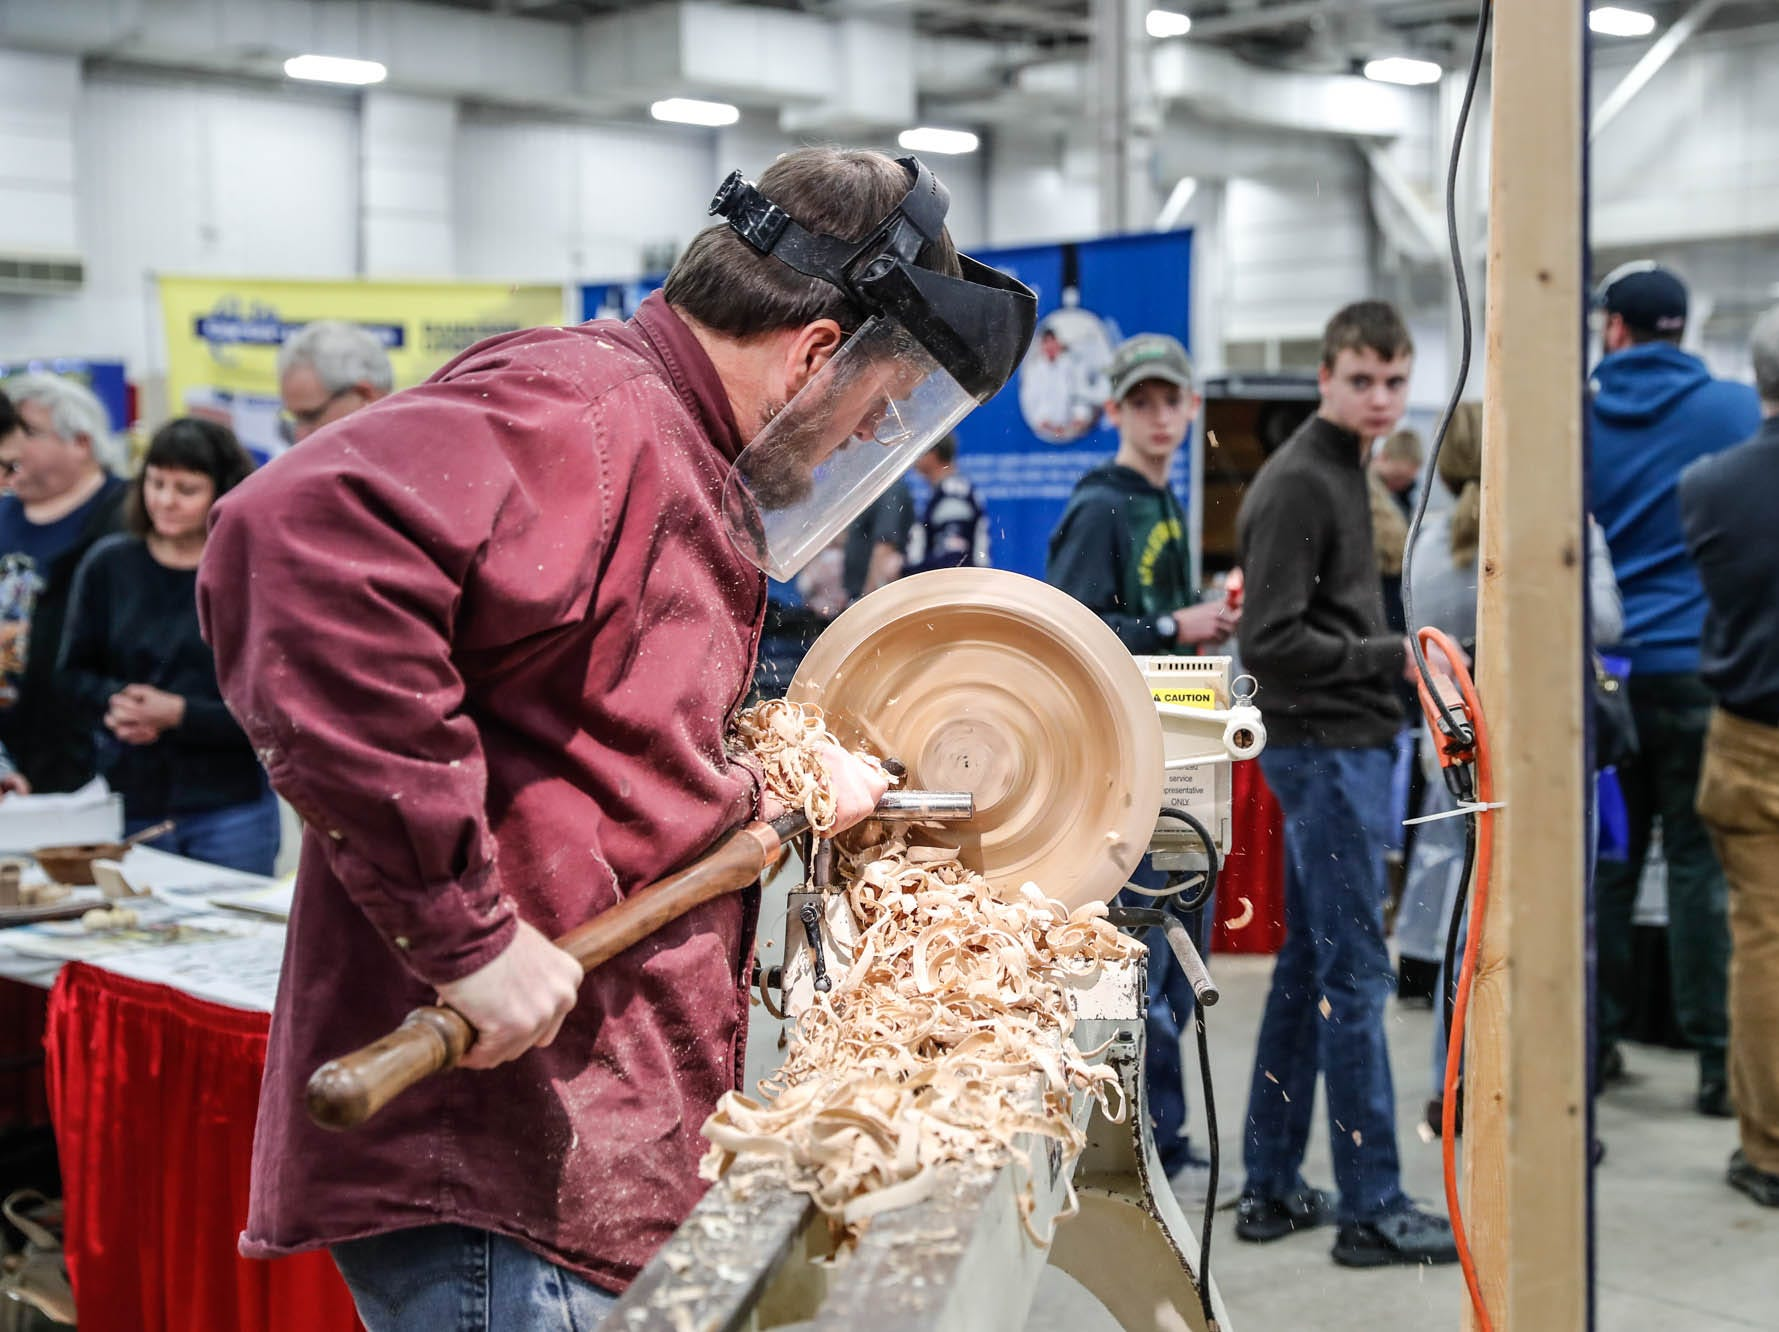 Tim Kennedy turns a wooden bowl during a Wood Working Show at the Indiana State Fairgrounds in Indianapolis on Sunday, Feb. 3, 2019.